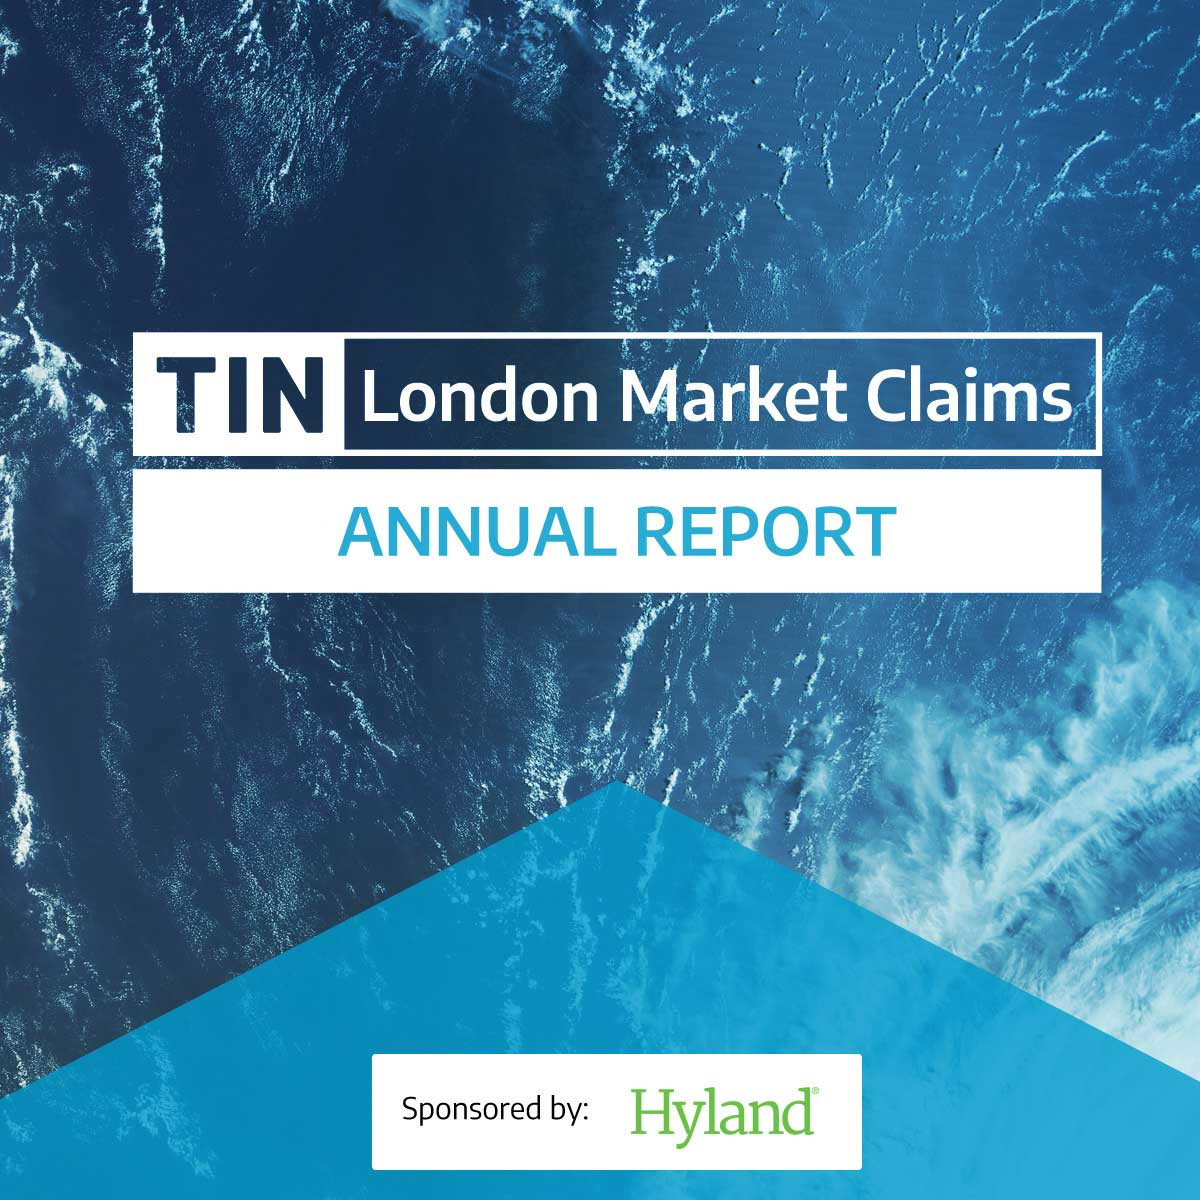 London Market Claims Annual Report 2018